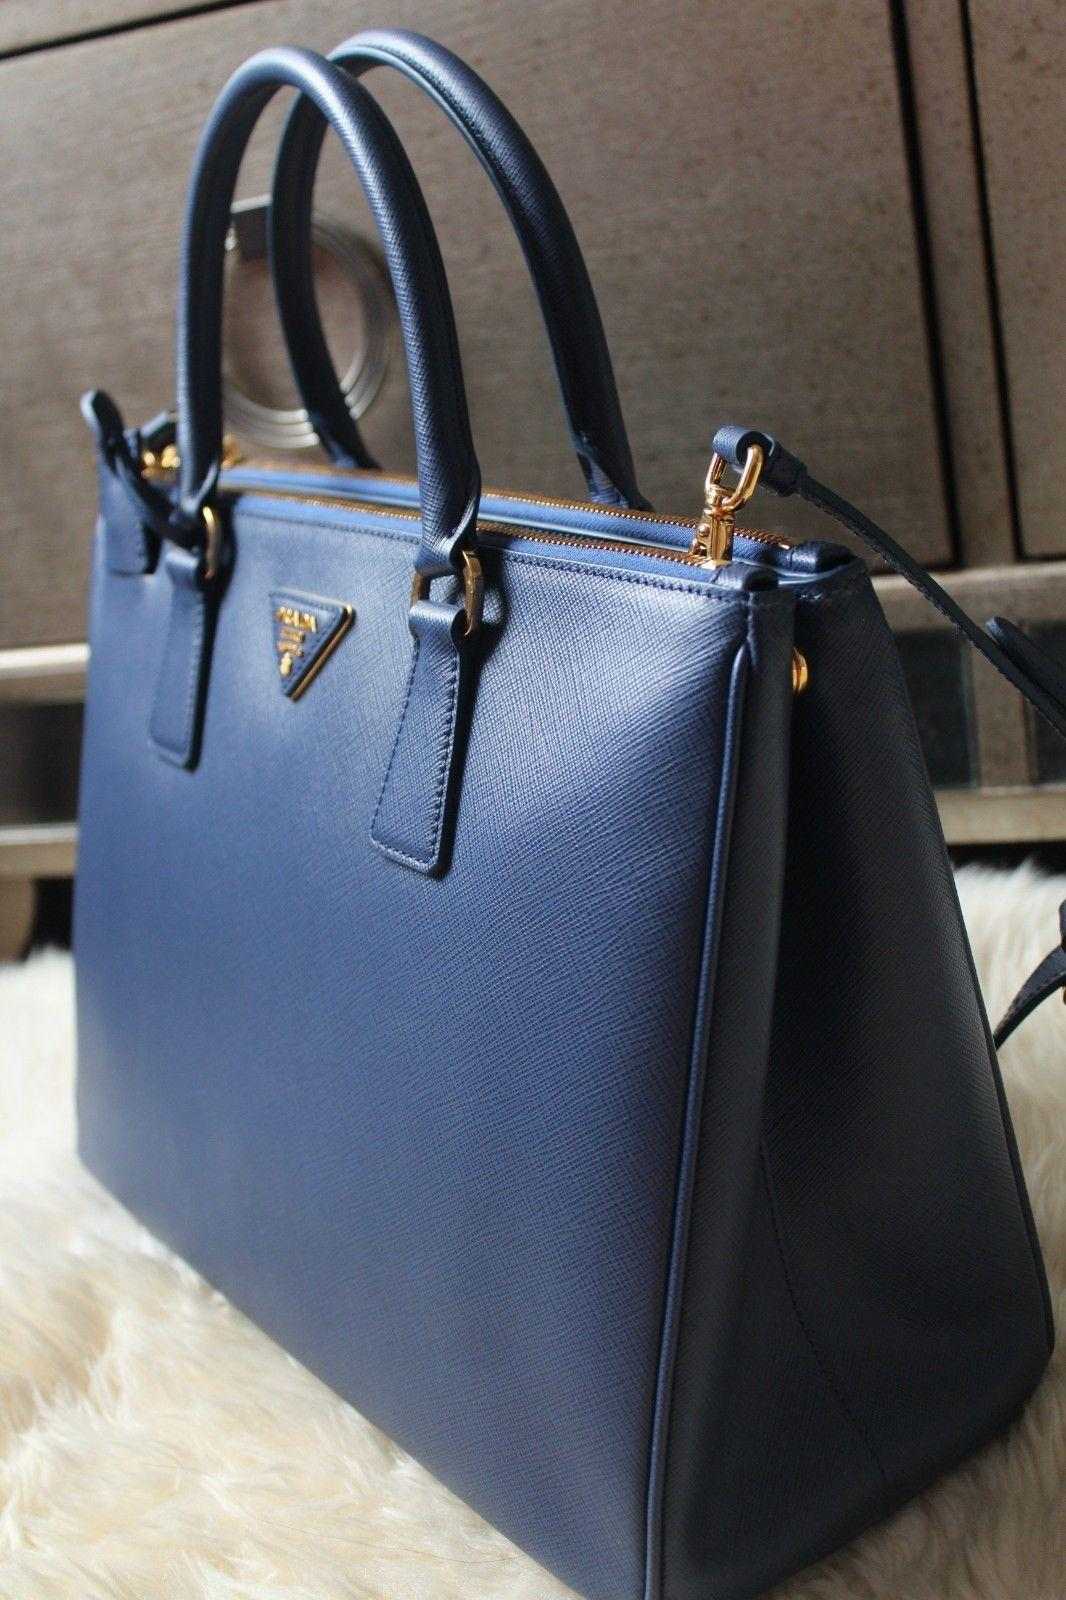 4dfe47a7b7a4 ... cheap prada black saffiano double zip leather galleria tote in cornflower  blue.